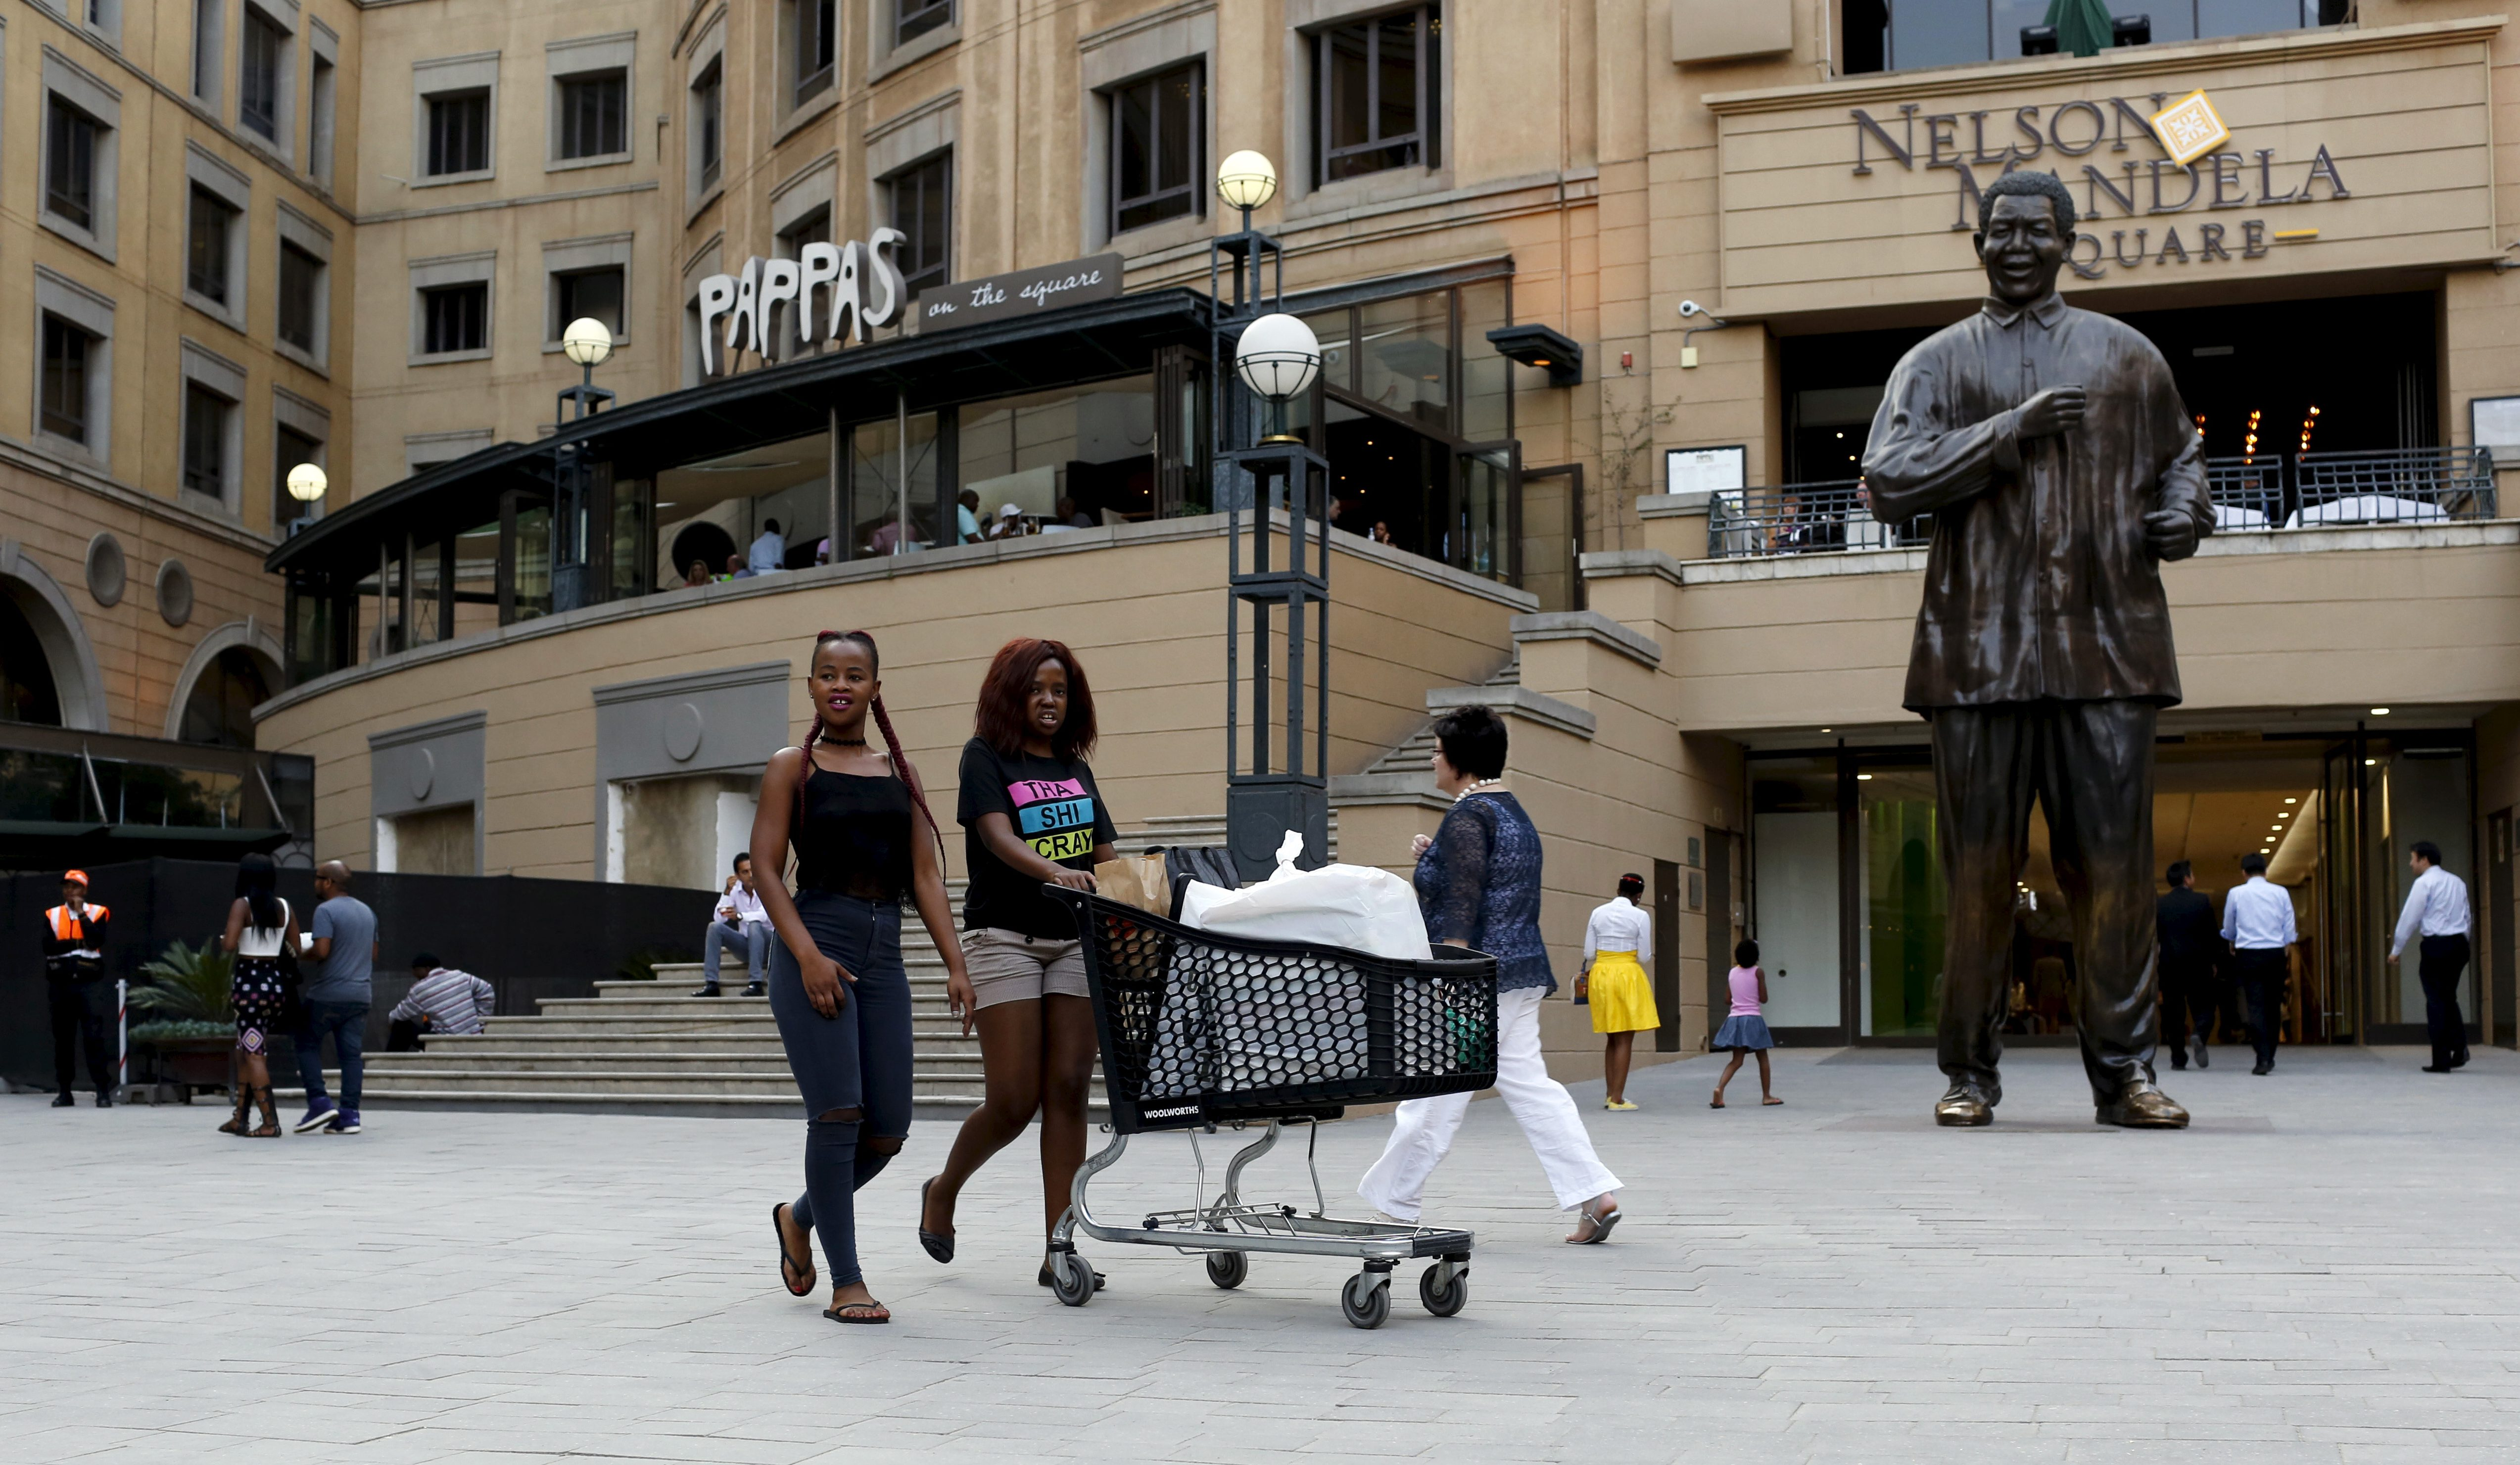 Shoppers push trolleys at an upmarket shopping mall in Sandton, Johannesburg